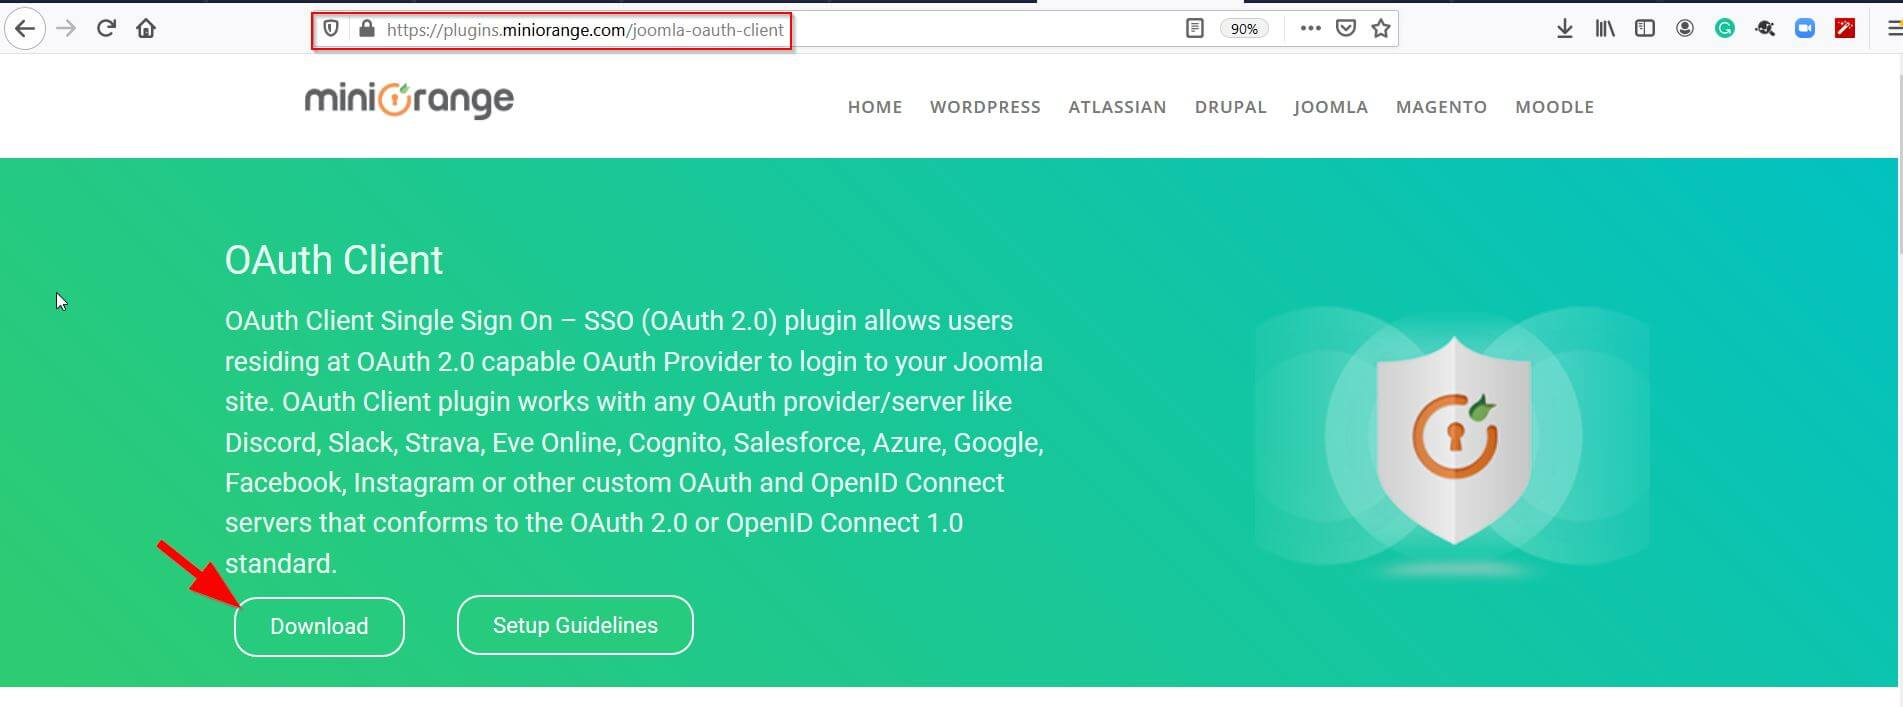 oauth provider the zip for Joomla